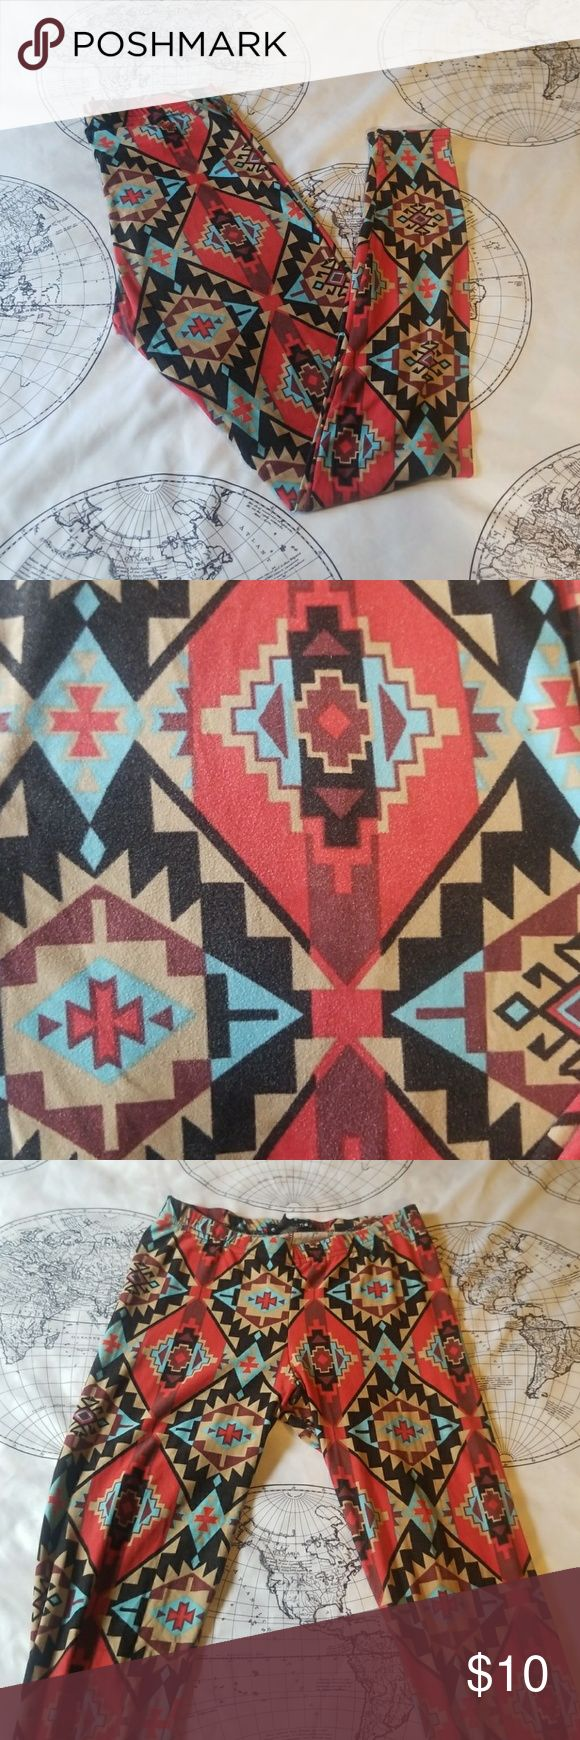 """Aztec Leggings Tribal aztec leggings. Feel amazing. eyecandy brand. Festival. Rave. Casual. Lounge. Bundle for savings. Says size small-petite, but i think fits small. Inseam 28"""". Colors red, black, blue, cream eye candy Pants Leggings"""